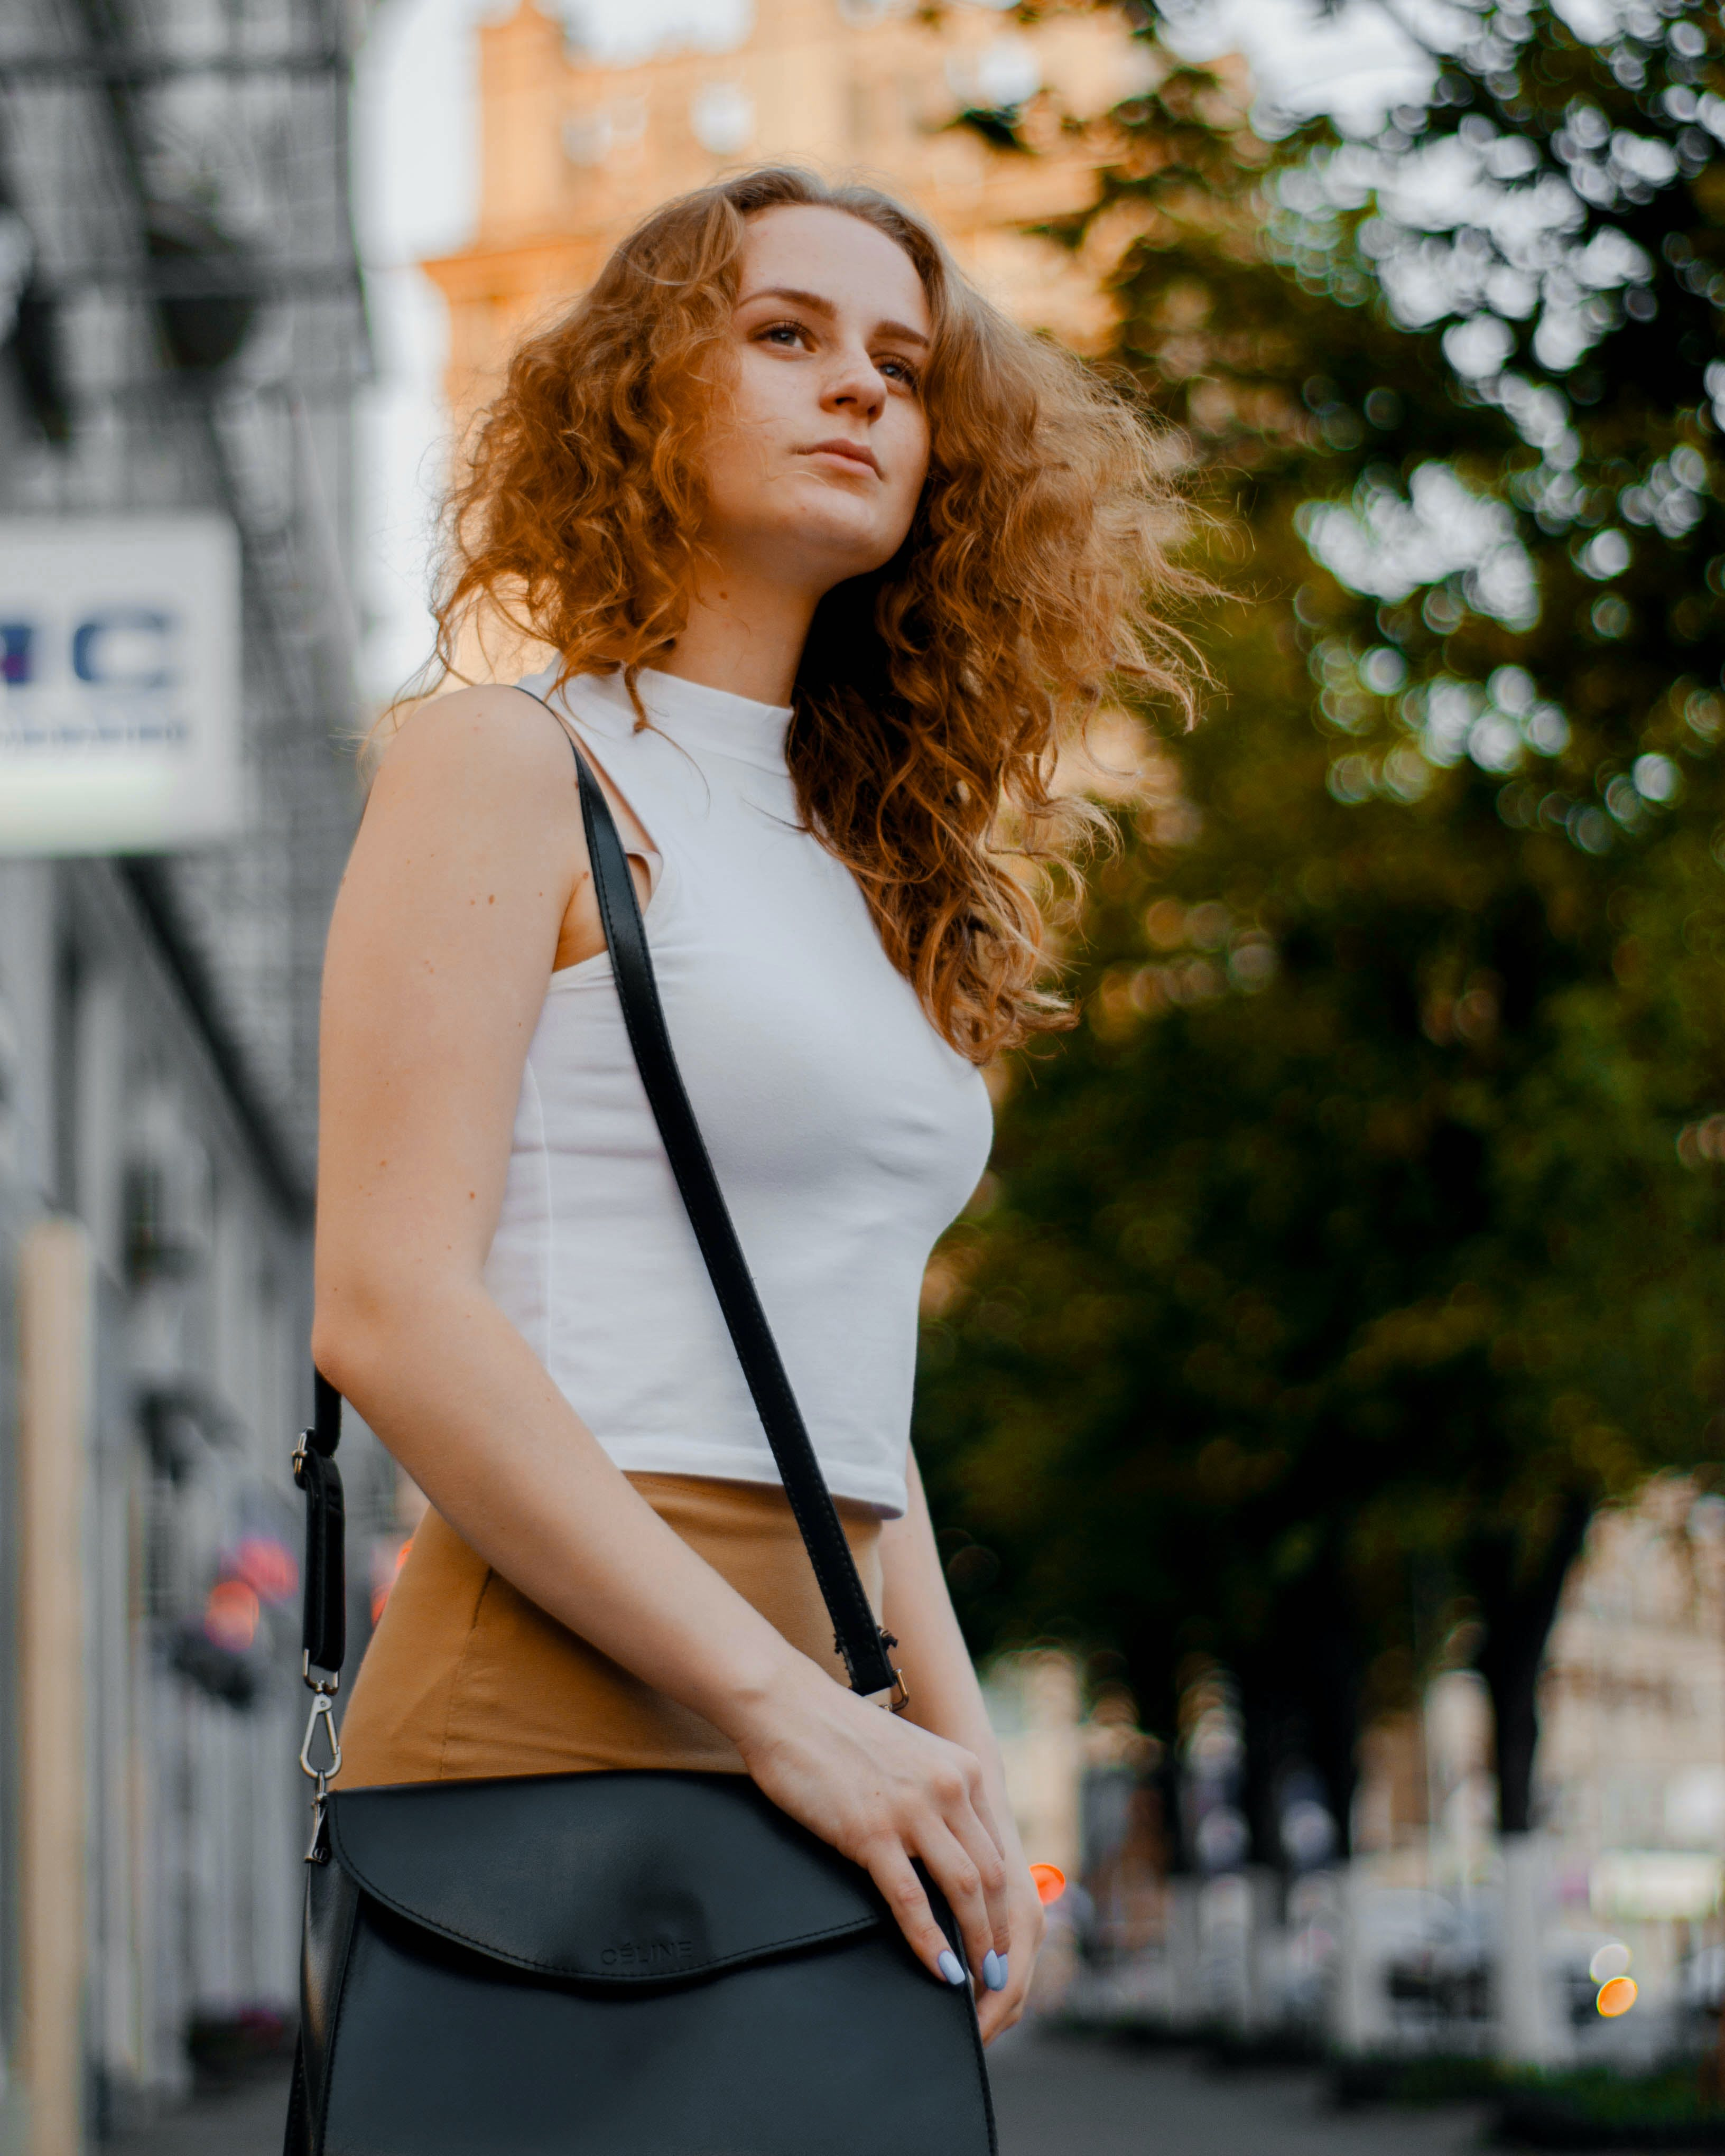 Woman in White Turtleneck Sleeveless Top and Brown Bottoms Holding Black Leather Crossbody Bag Outfit